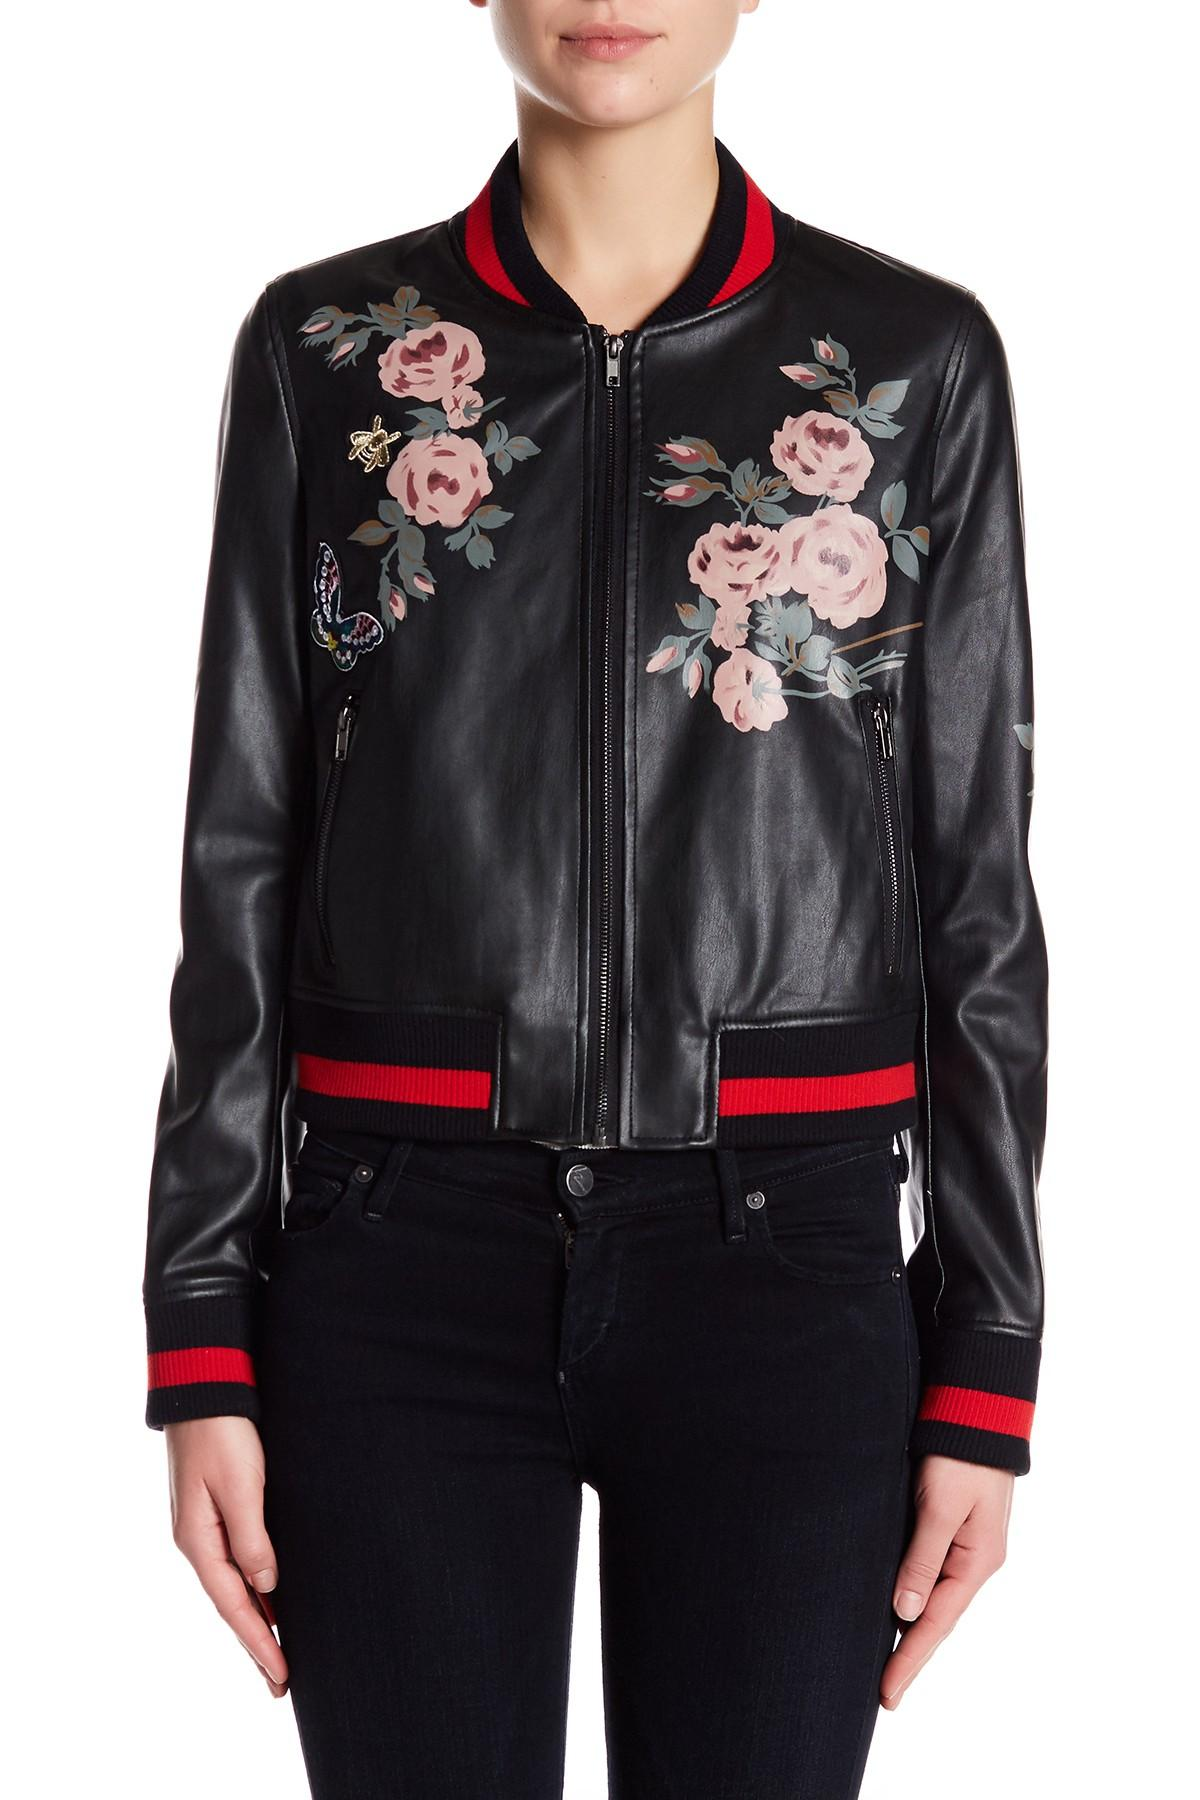 0a595522f54 Lyst - Bagatelle Floral Painted Bomber Jacket in Black